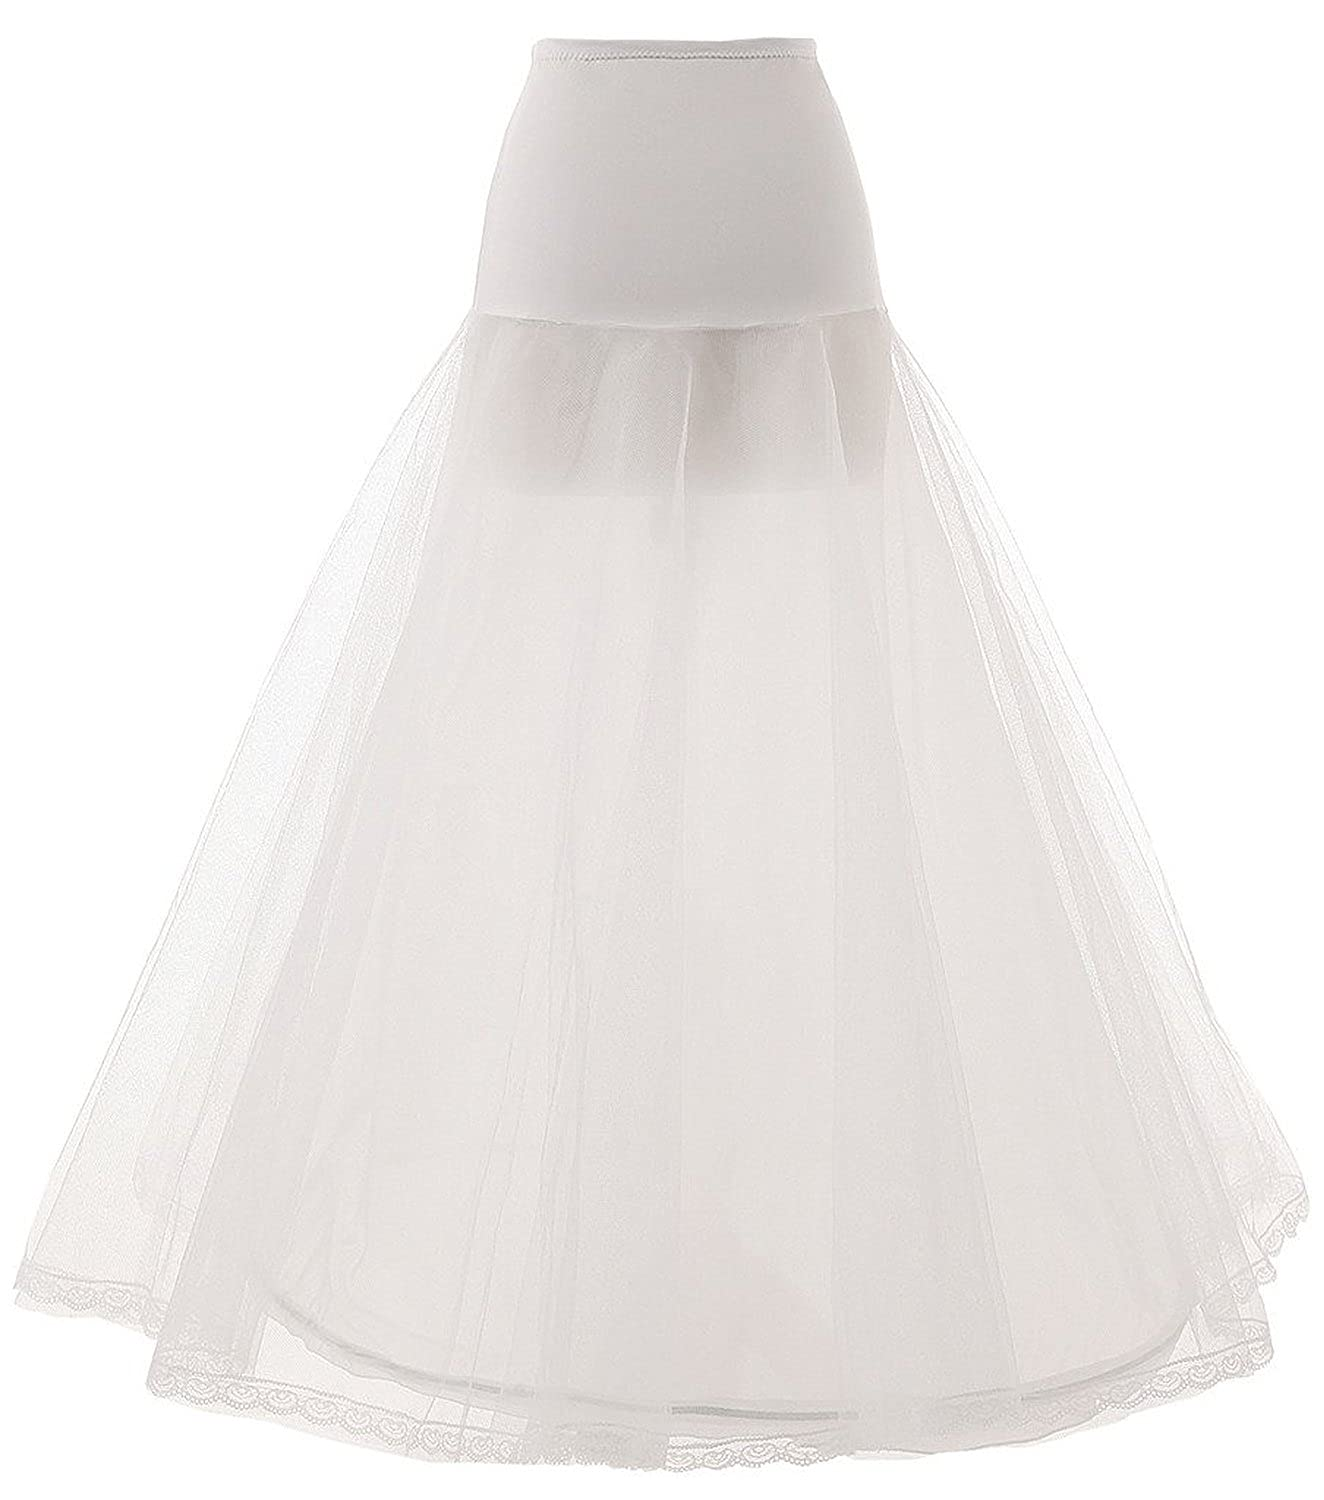 KISSBRIDAL Women's A Line Floor Length Wedding Dress Underskirt Petticoats Slips AC83-White